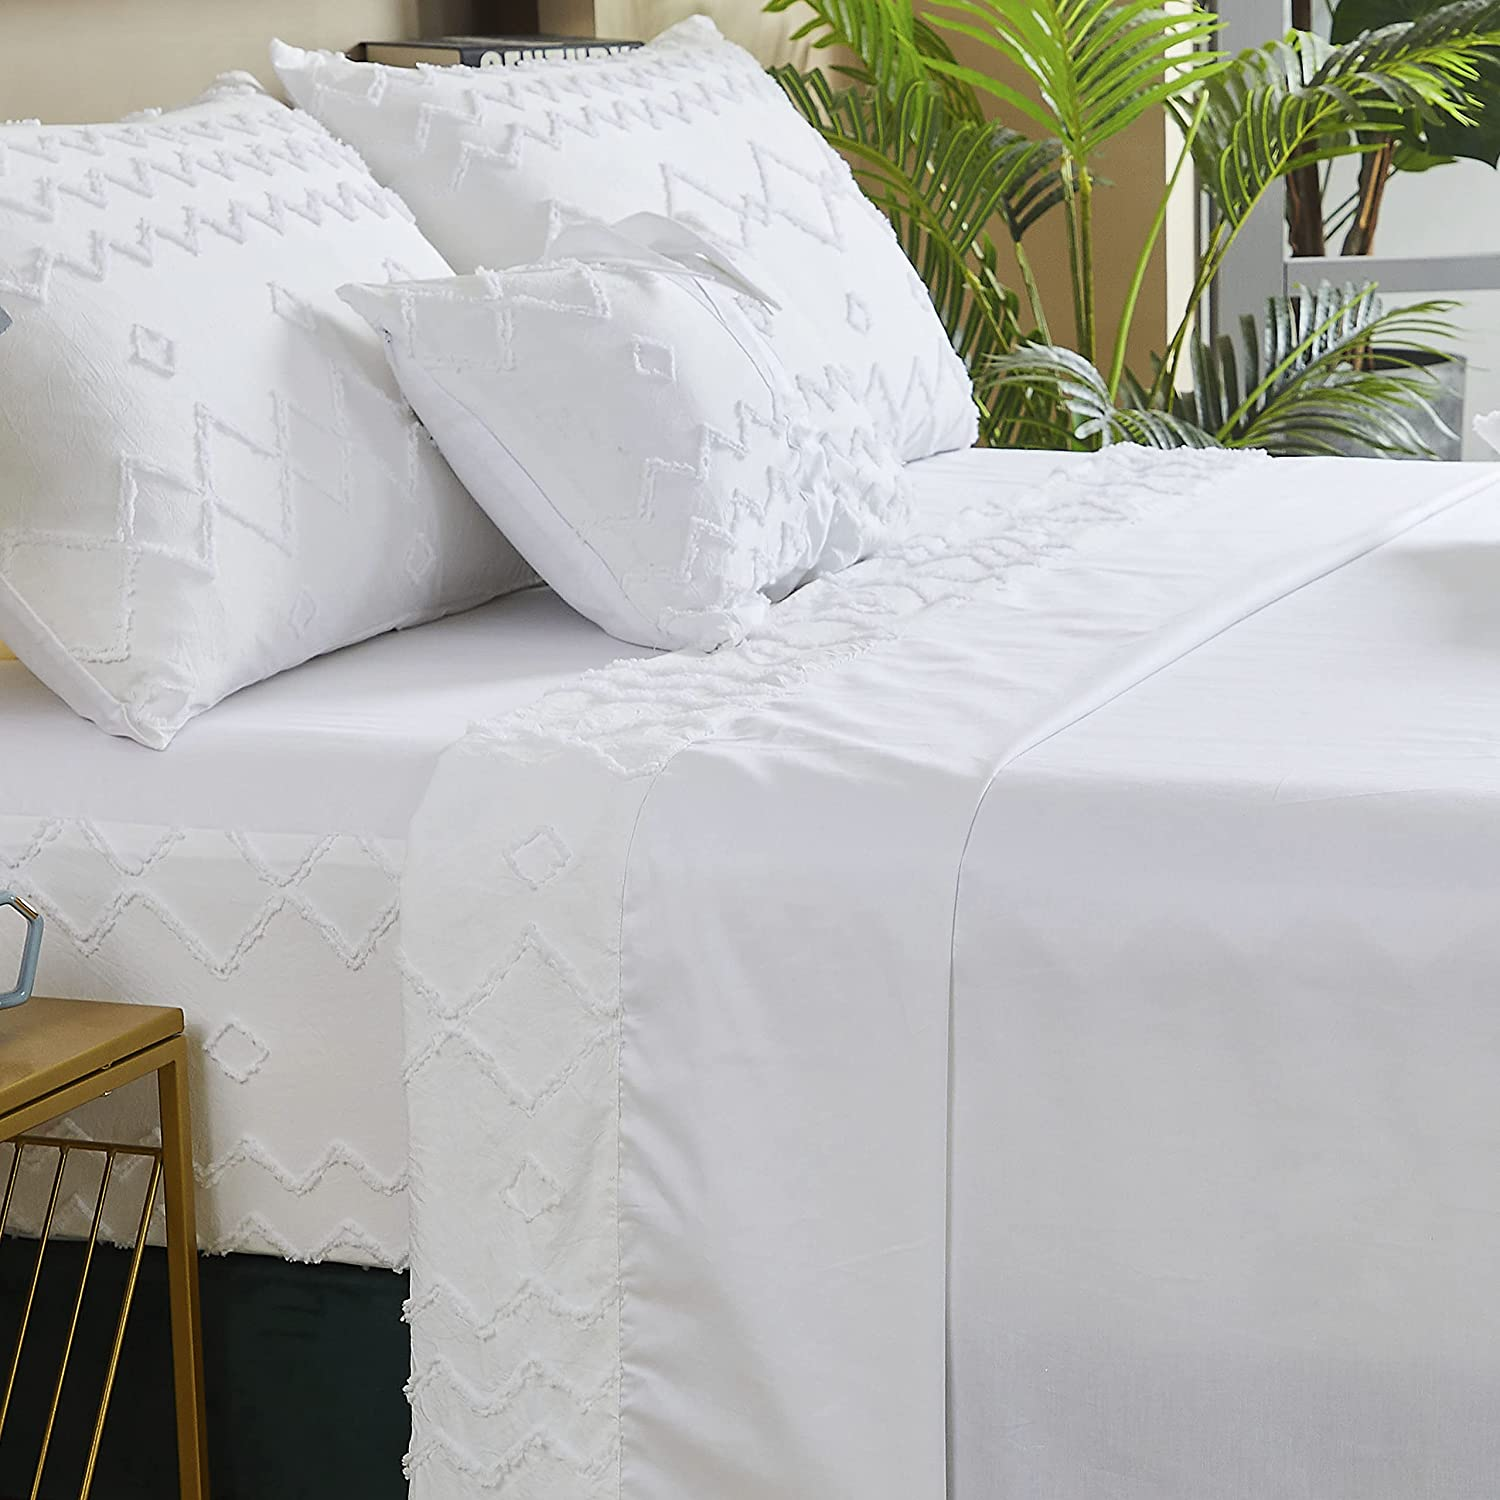 FADFAY Chic Very popular White Sheets Twin XL Max 56% OFF Room Cotton 6 Dorm Soft Bedding